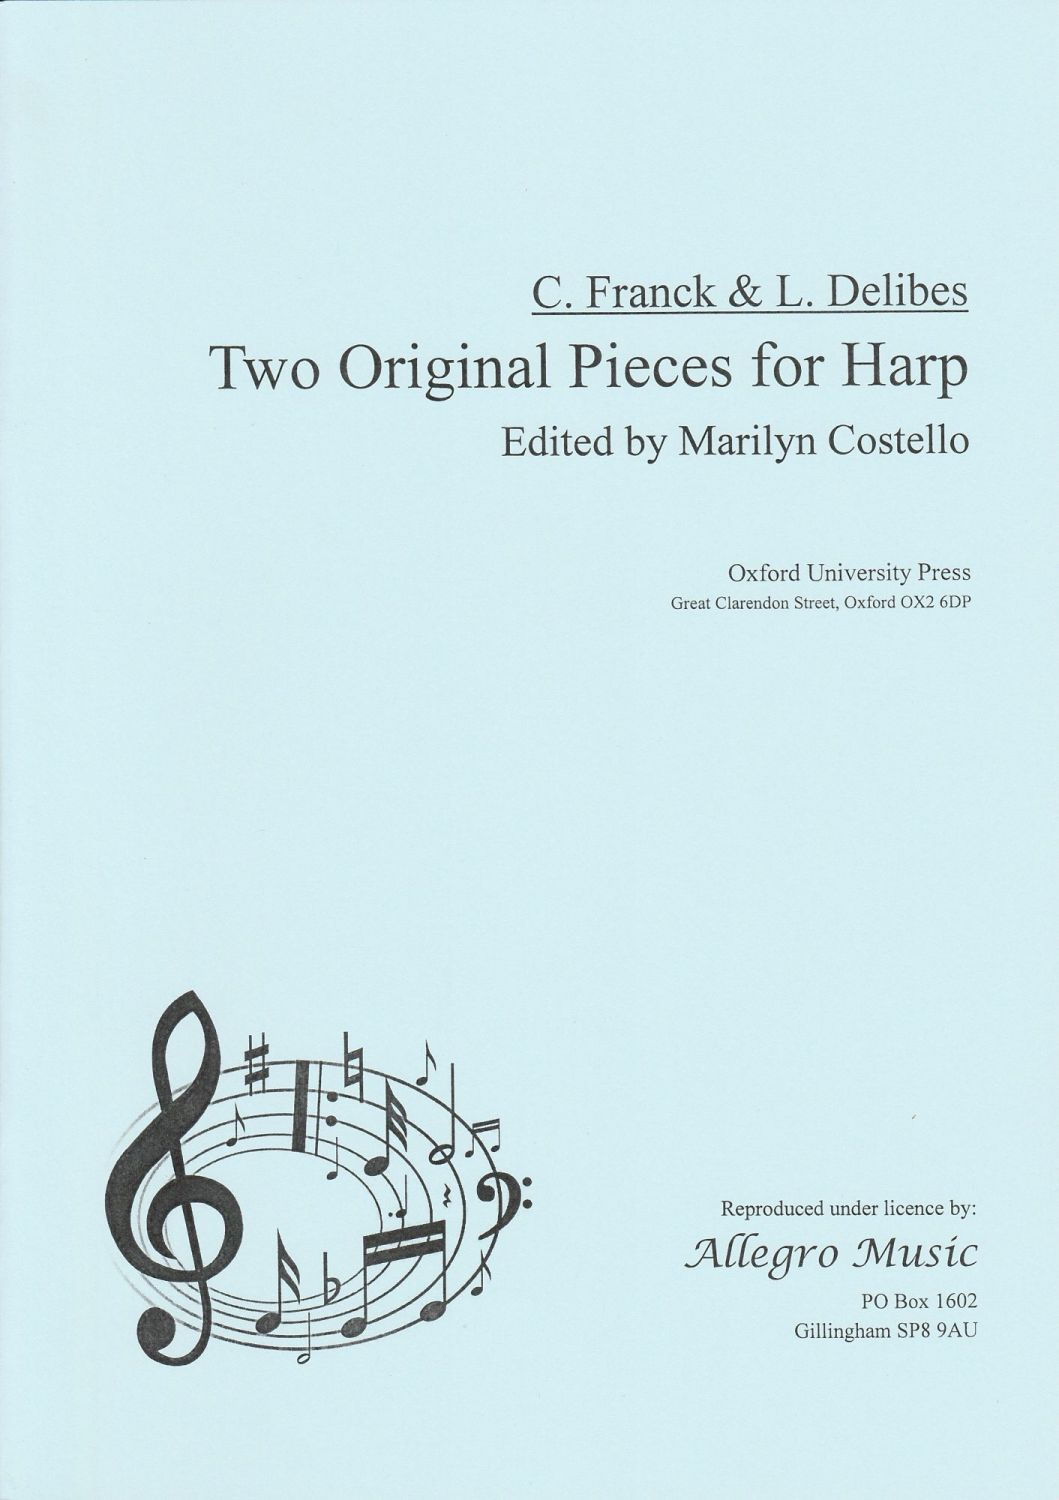 Two Original Pieces for Harp - Franck & Delibes